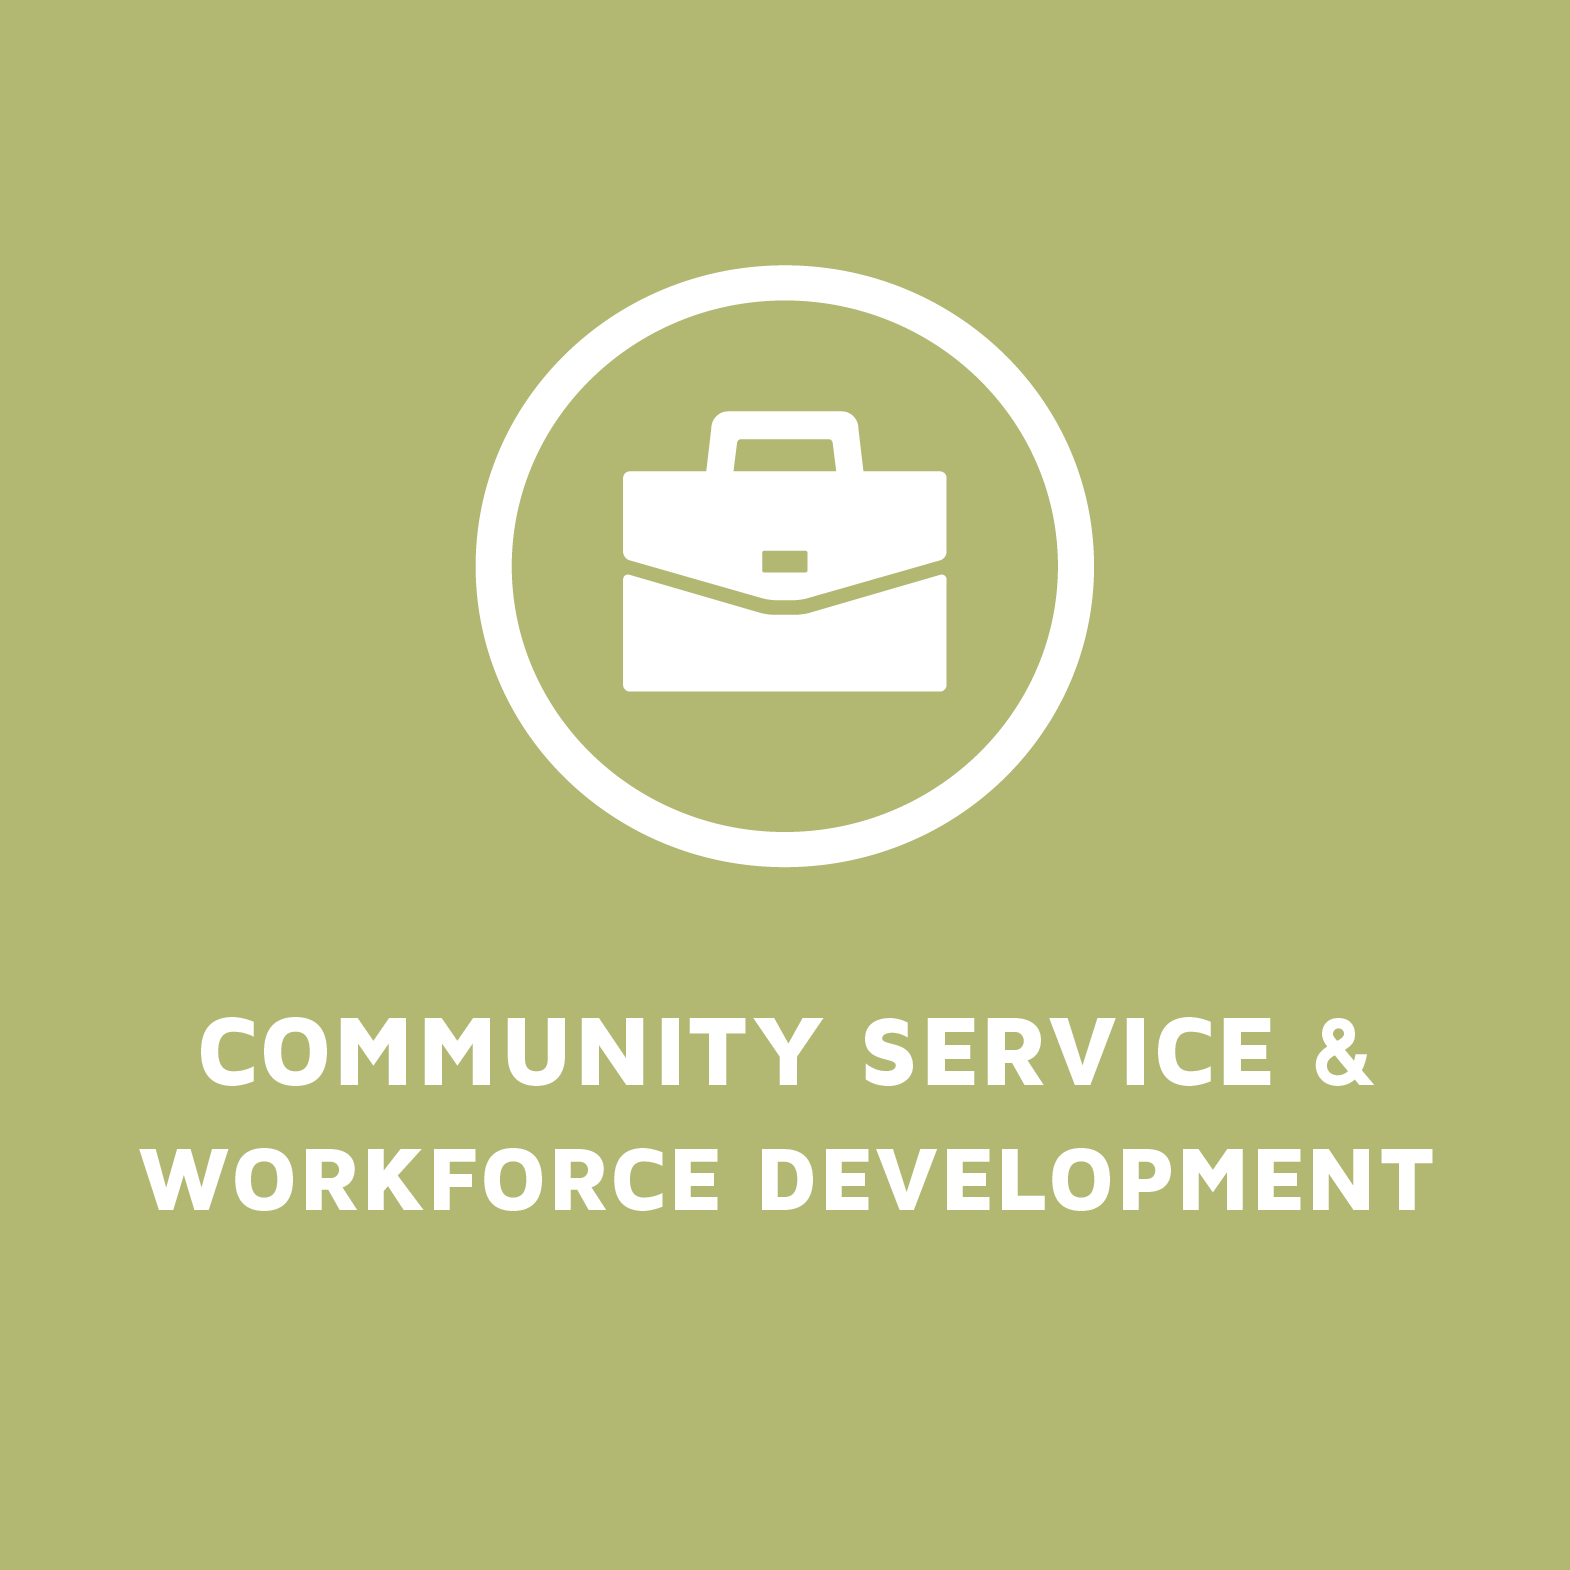 Community Services and Workforce Development